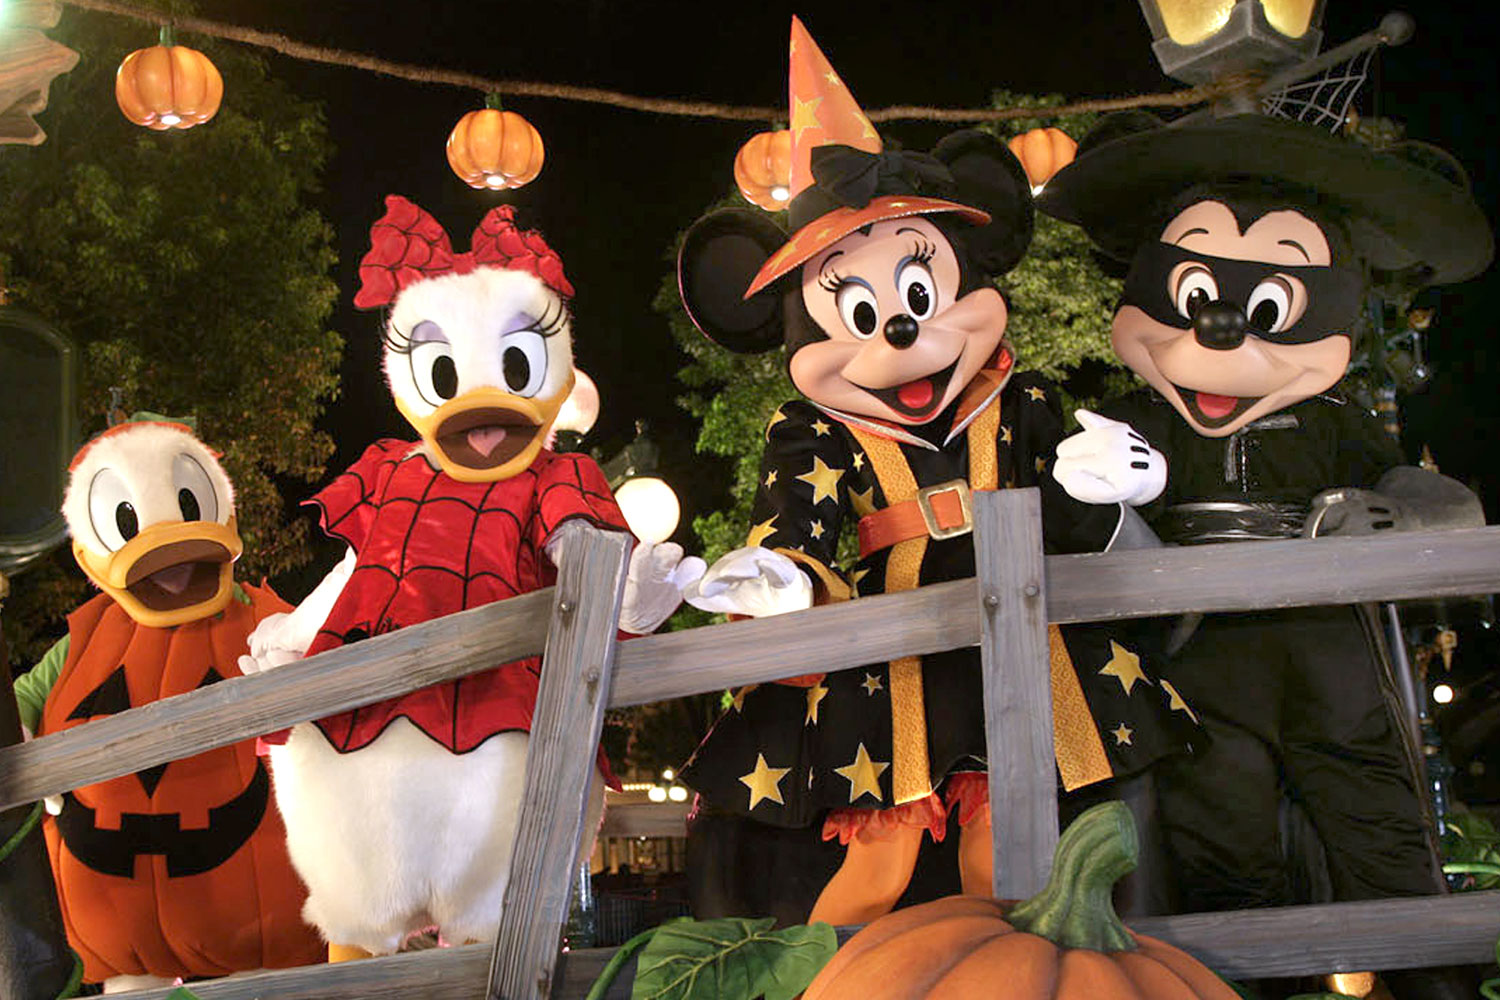 Disney Halloween Wallpapers wallpaper Disney Halloween Wallpapers hd 1500x1000